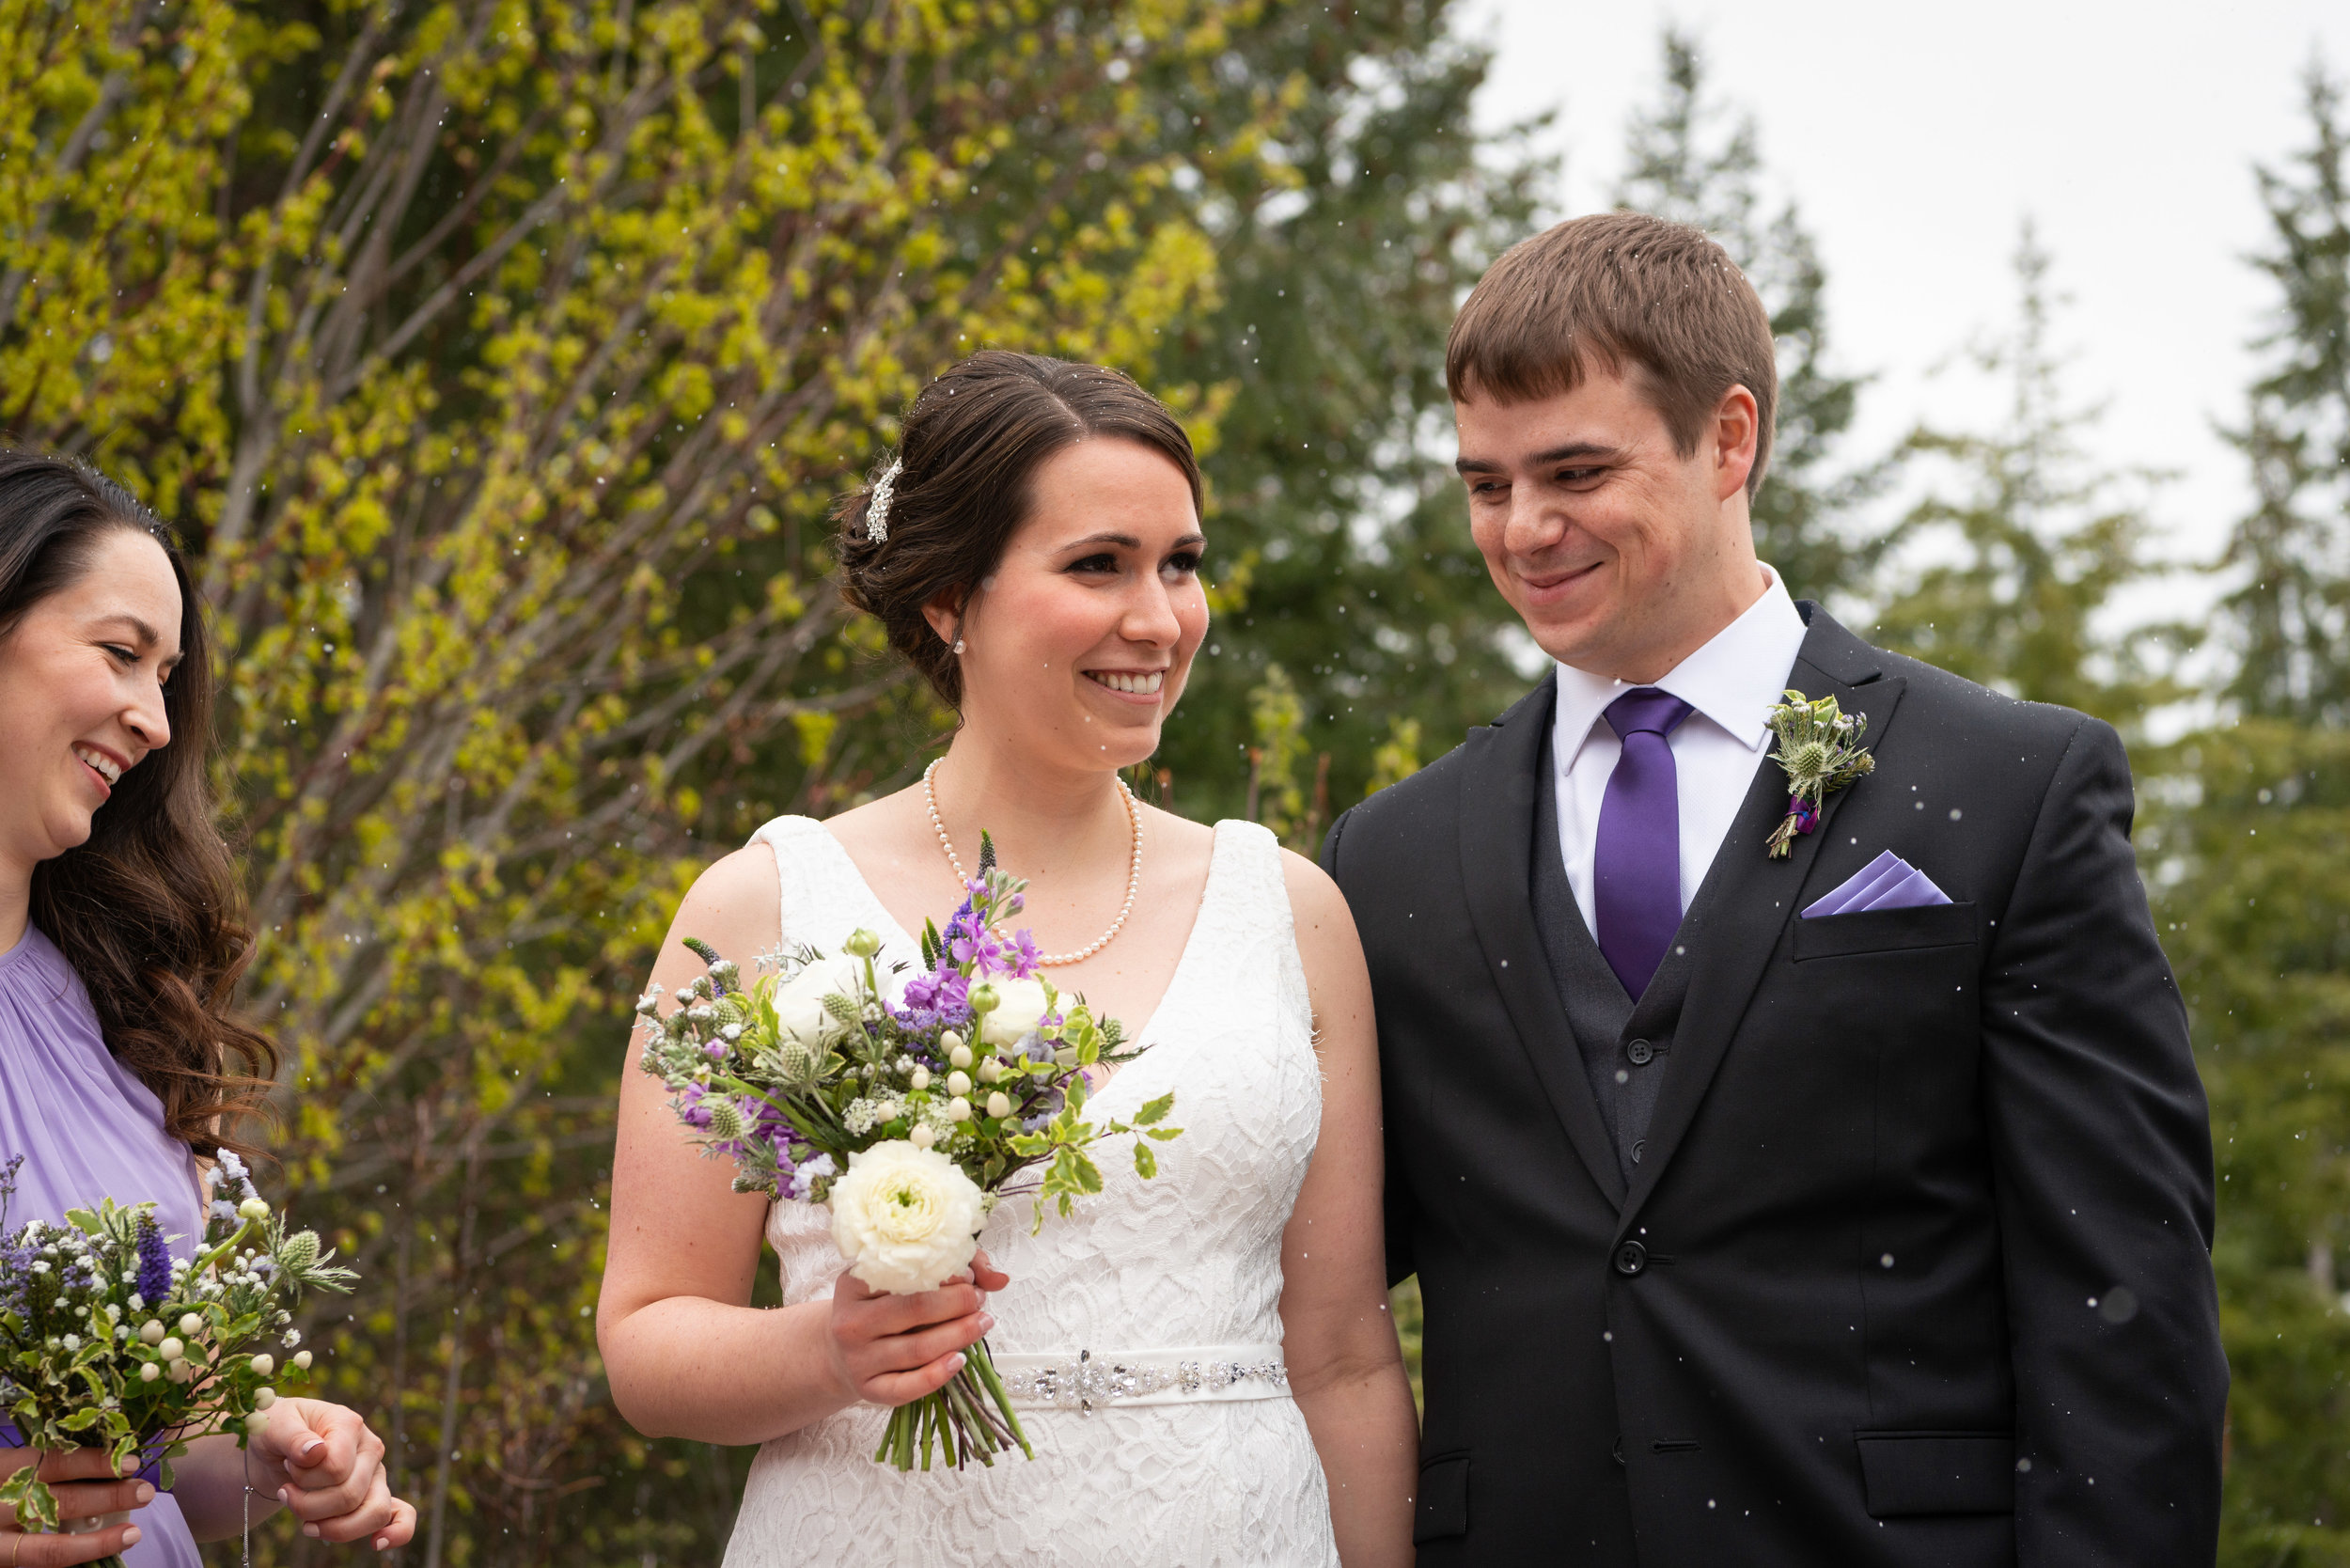 Romantic Elopement at Tin Poppy Retreat in British Columbia 12.jpg